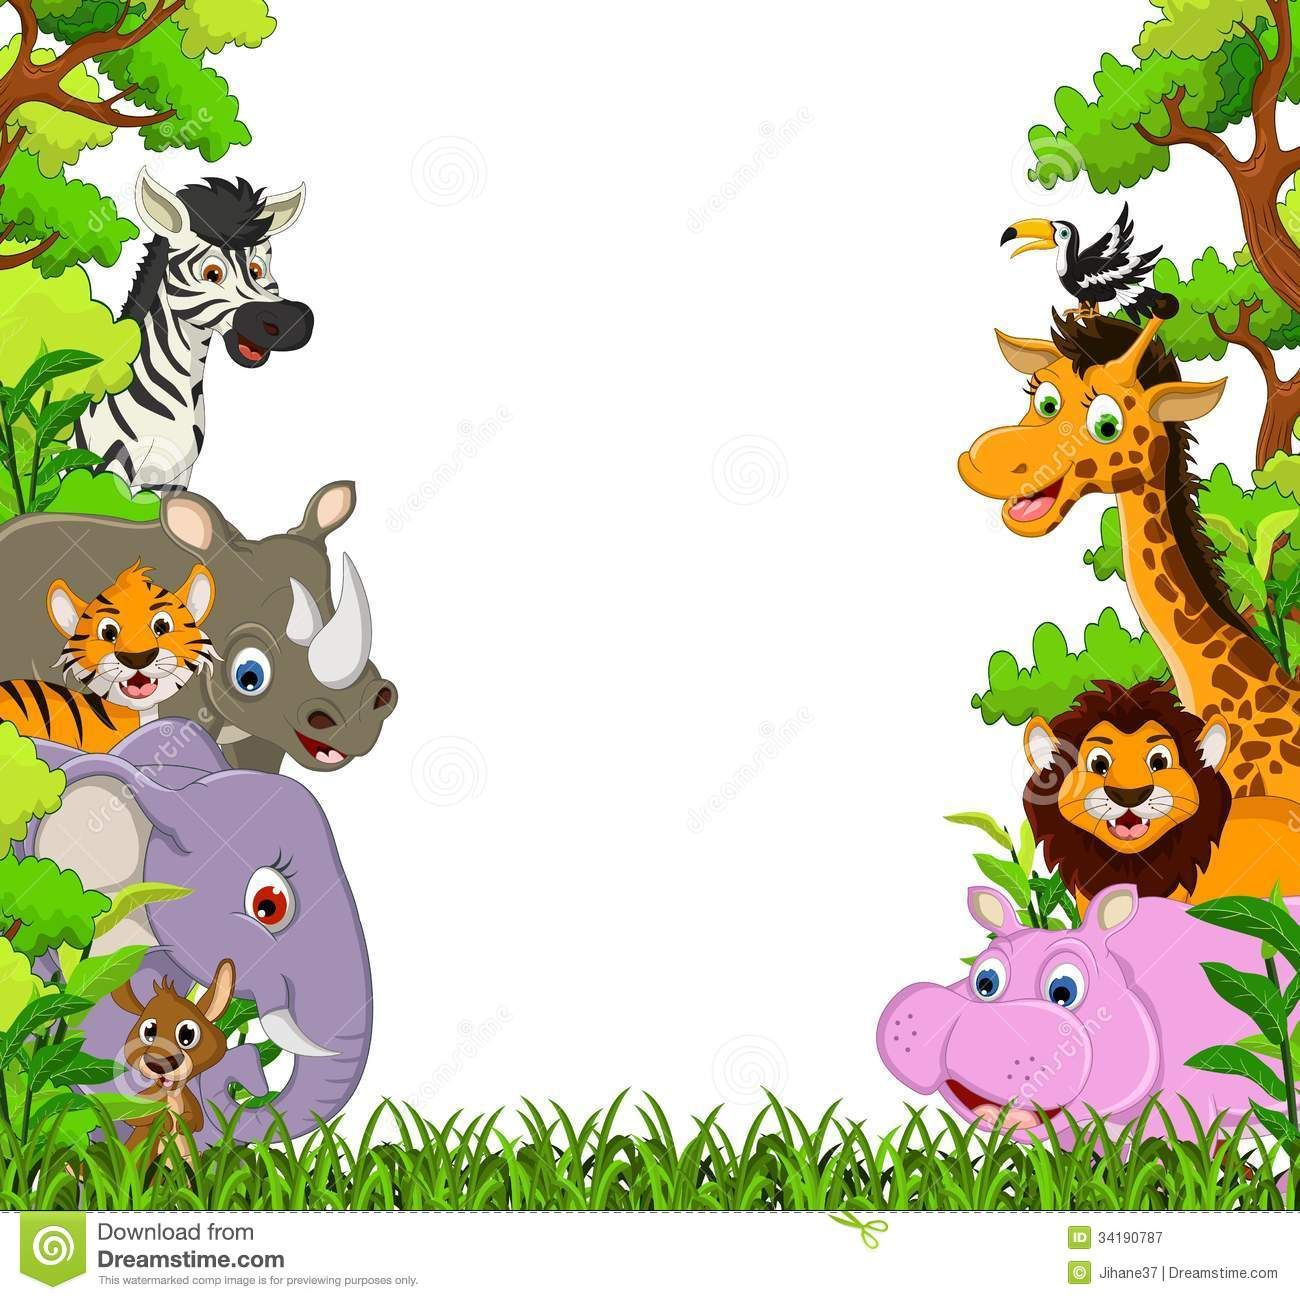 Image for Free Jungle Animal Clipart Cartoon Images Cute